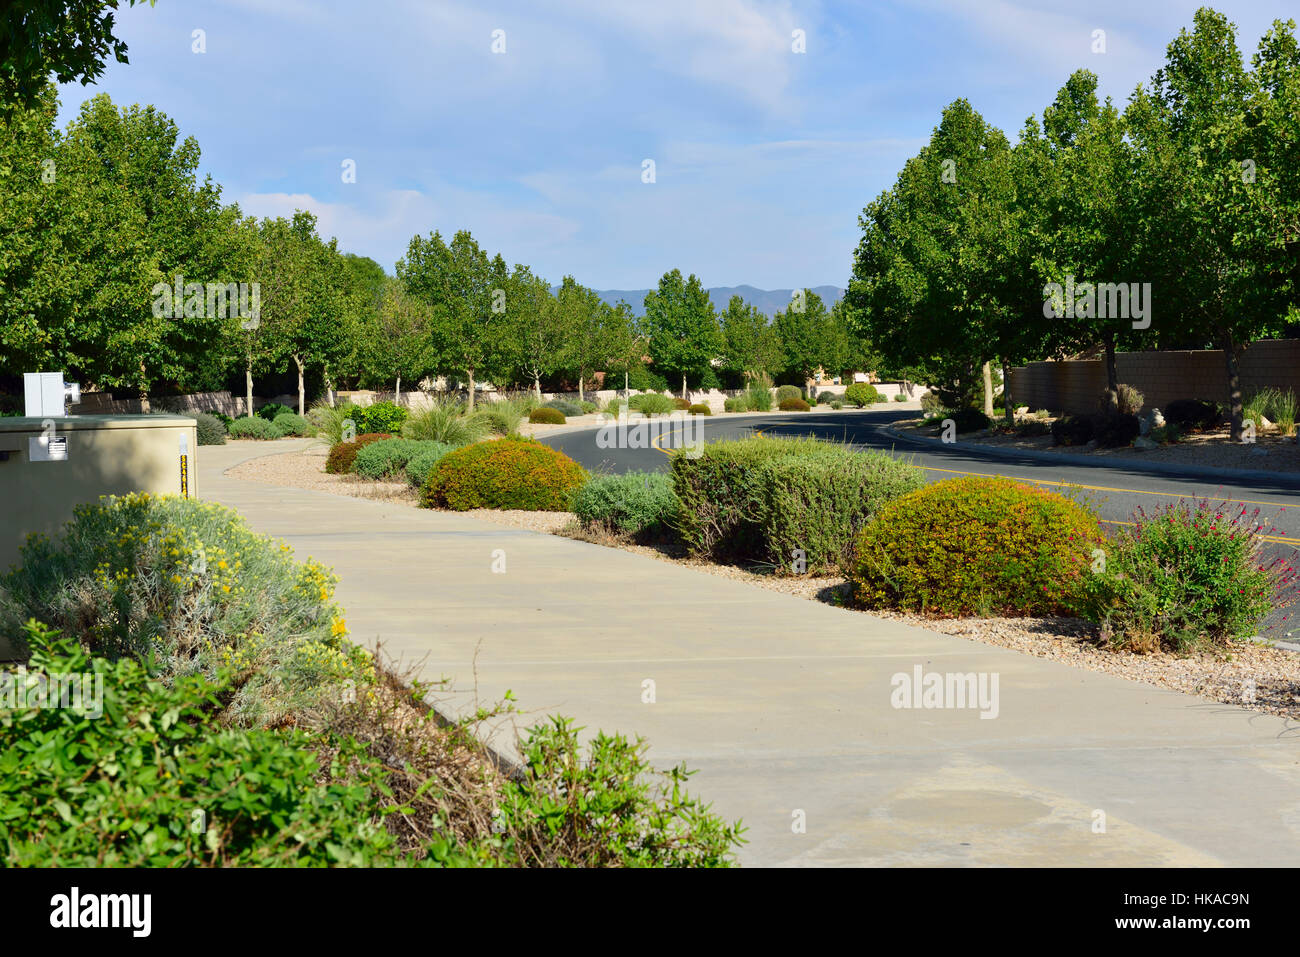 Suburban Street Landscaping In Dry Climate Of Yavapai County Stock